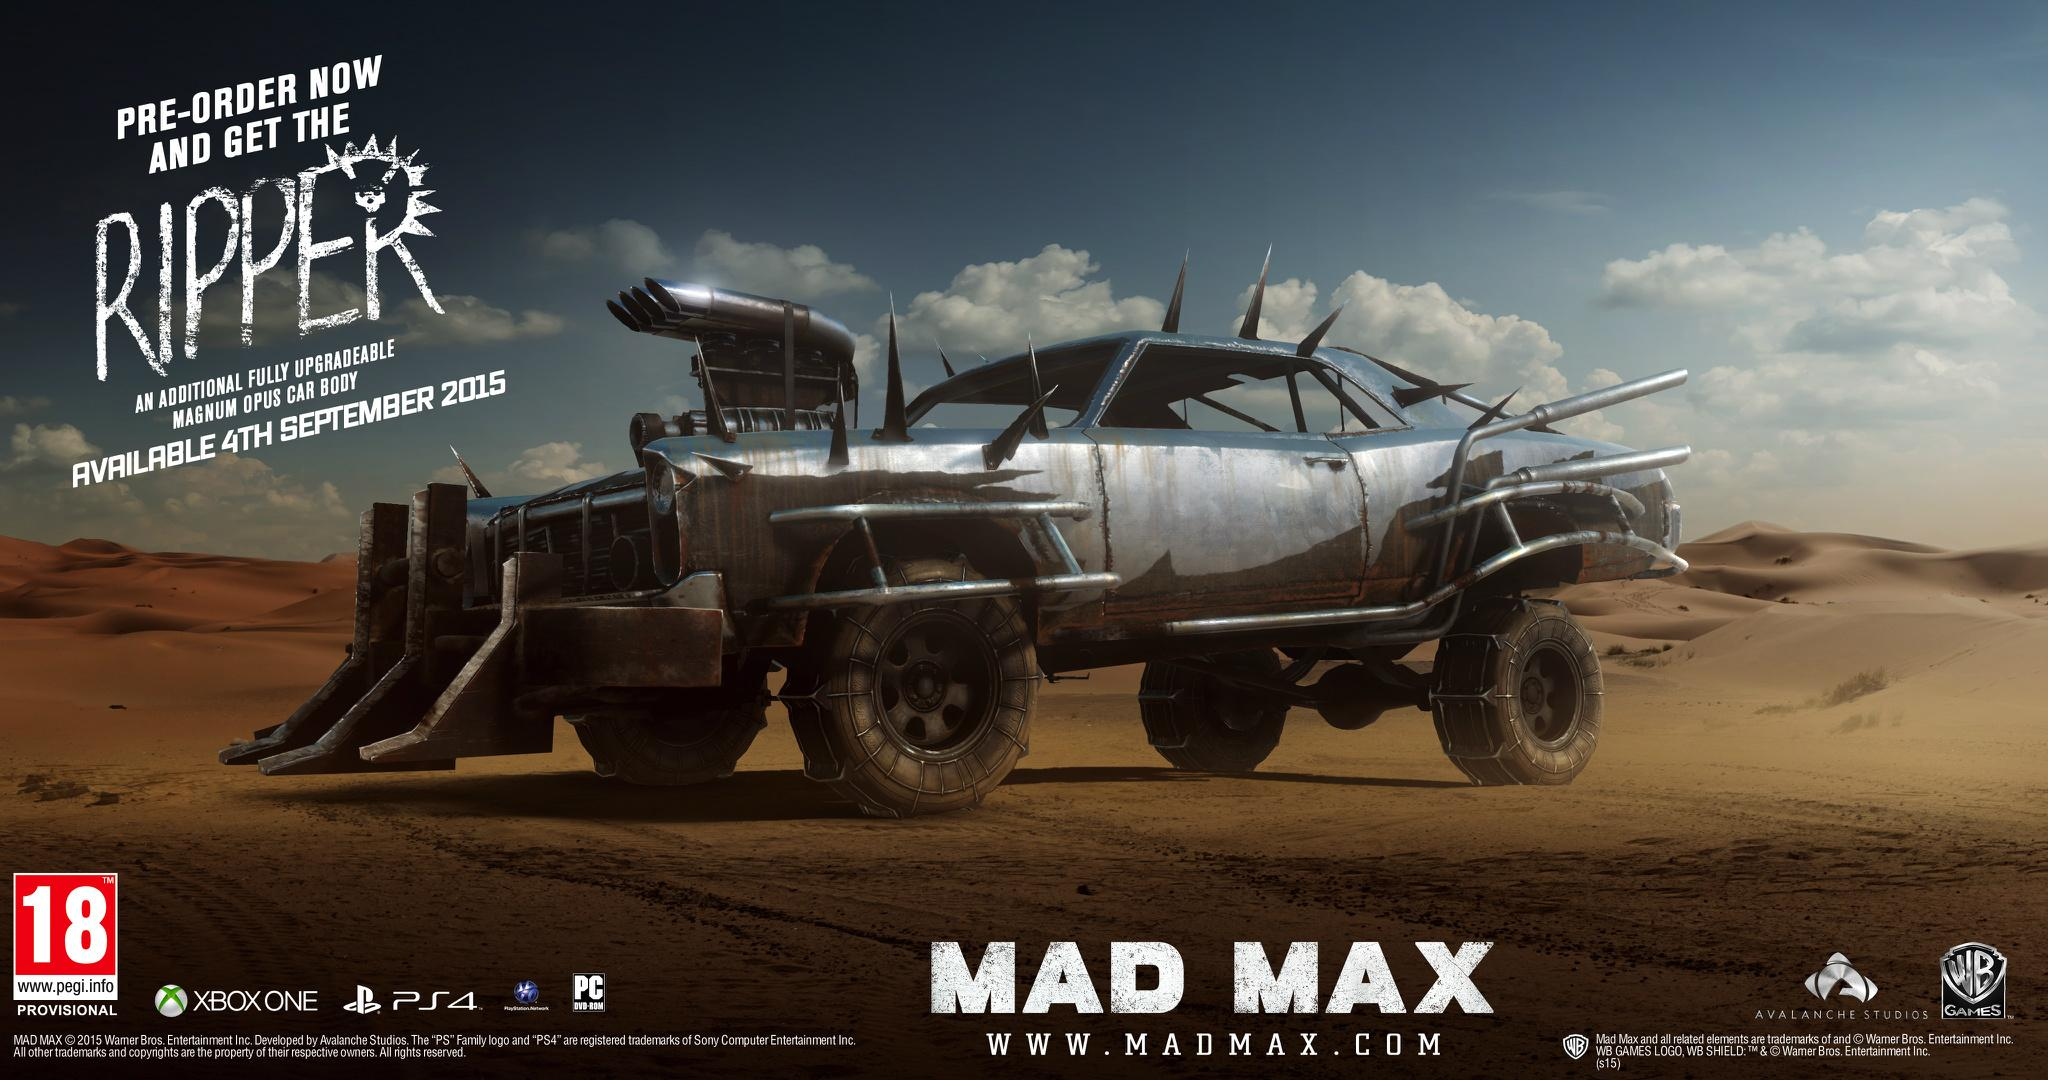 Fragtist-mad-max-the-ripper